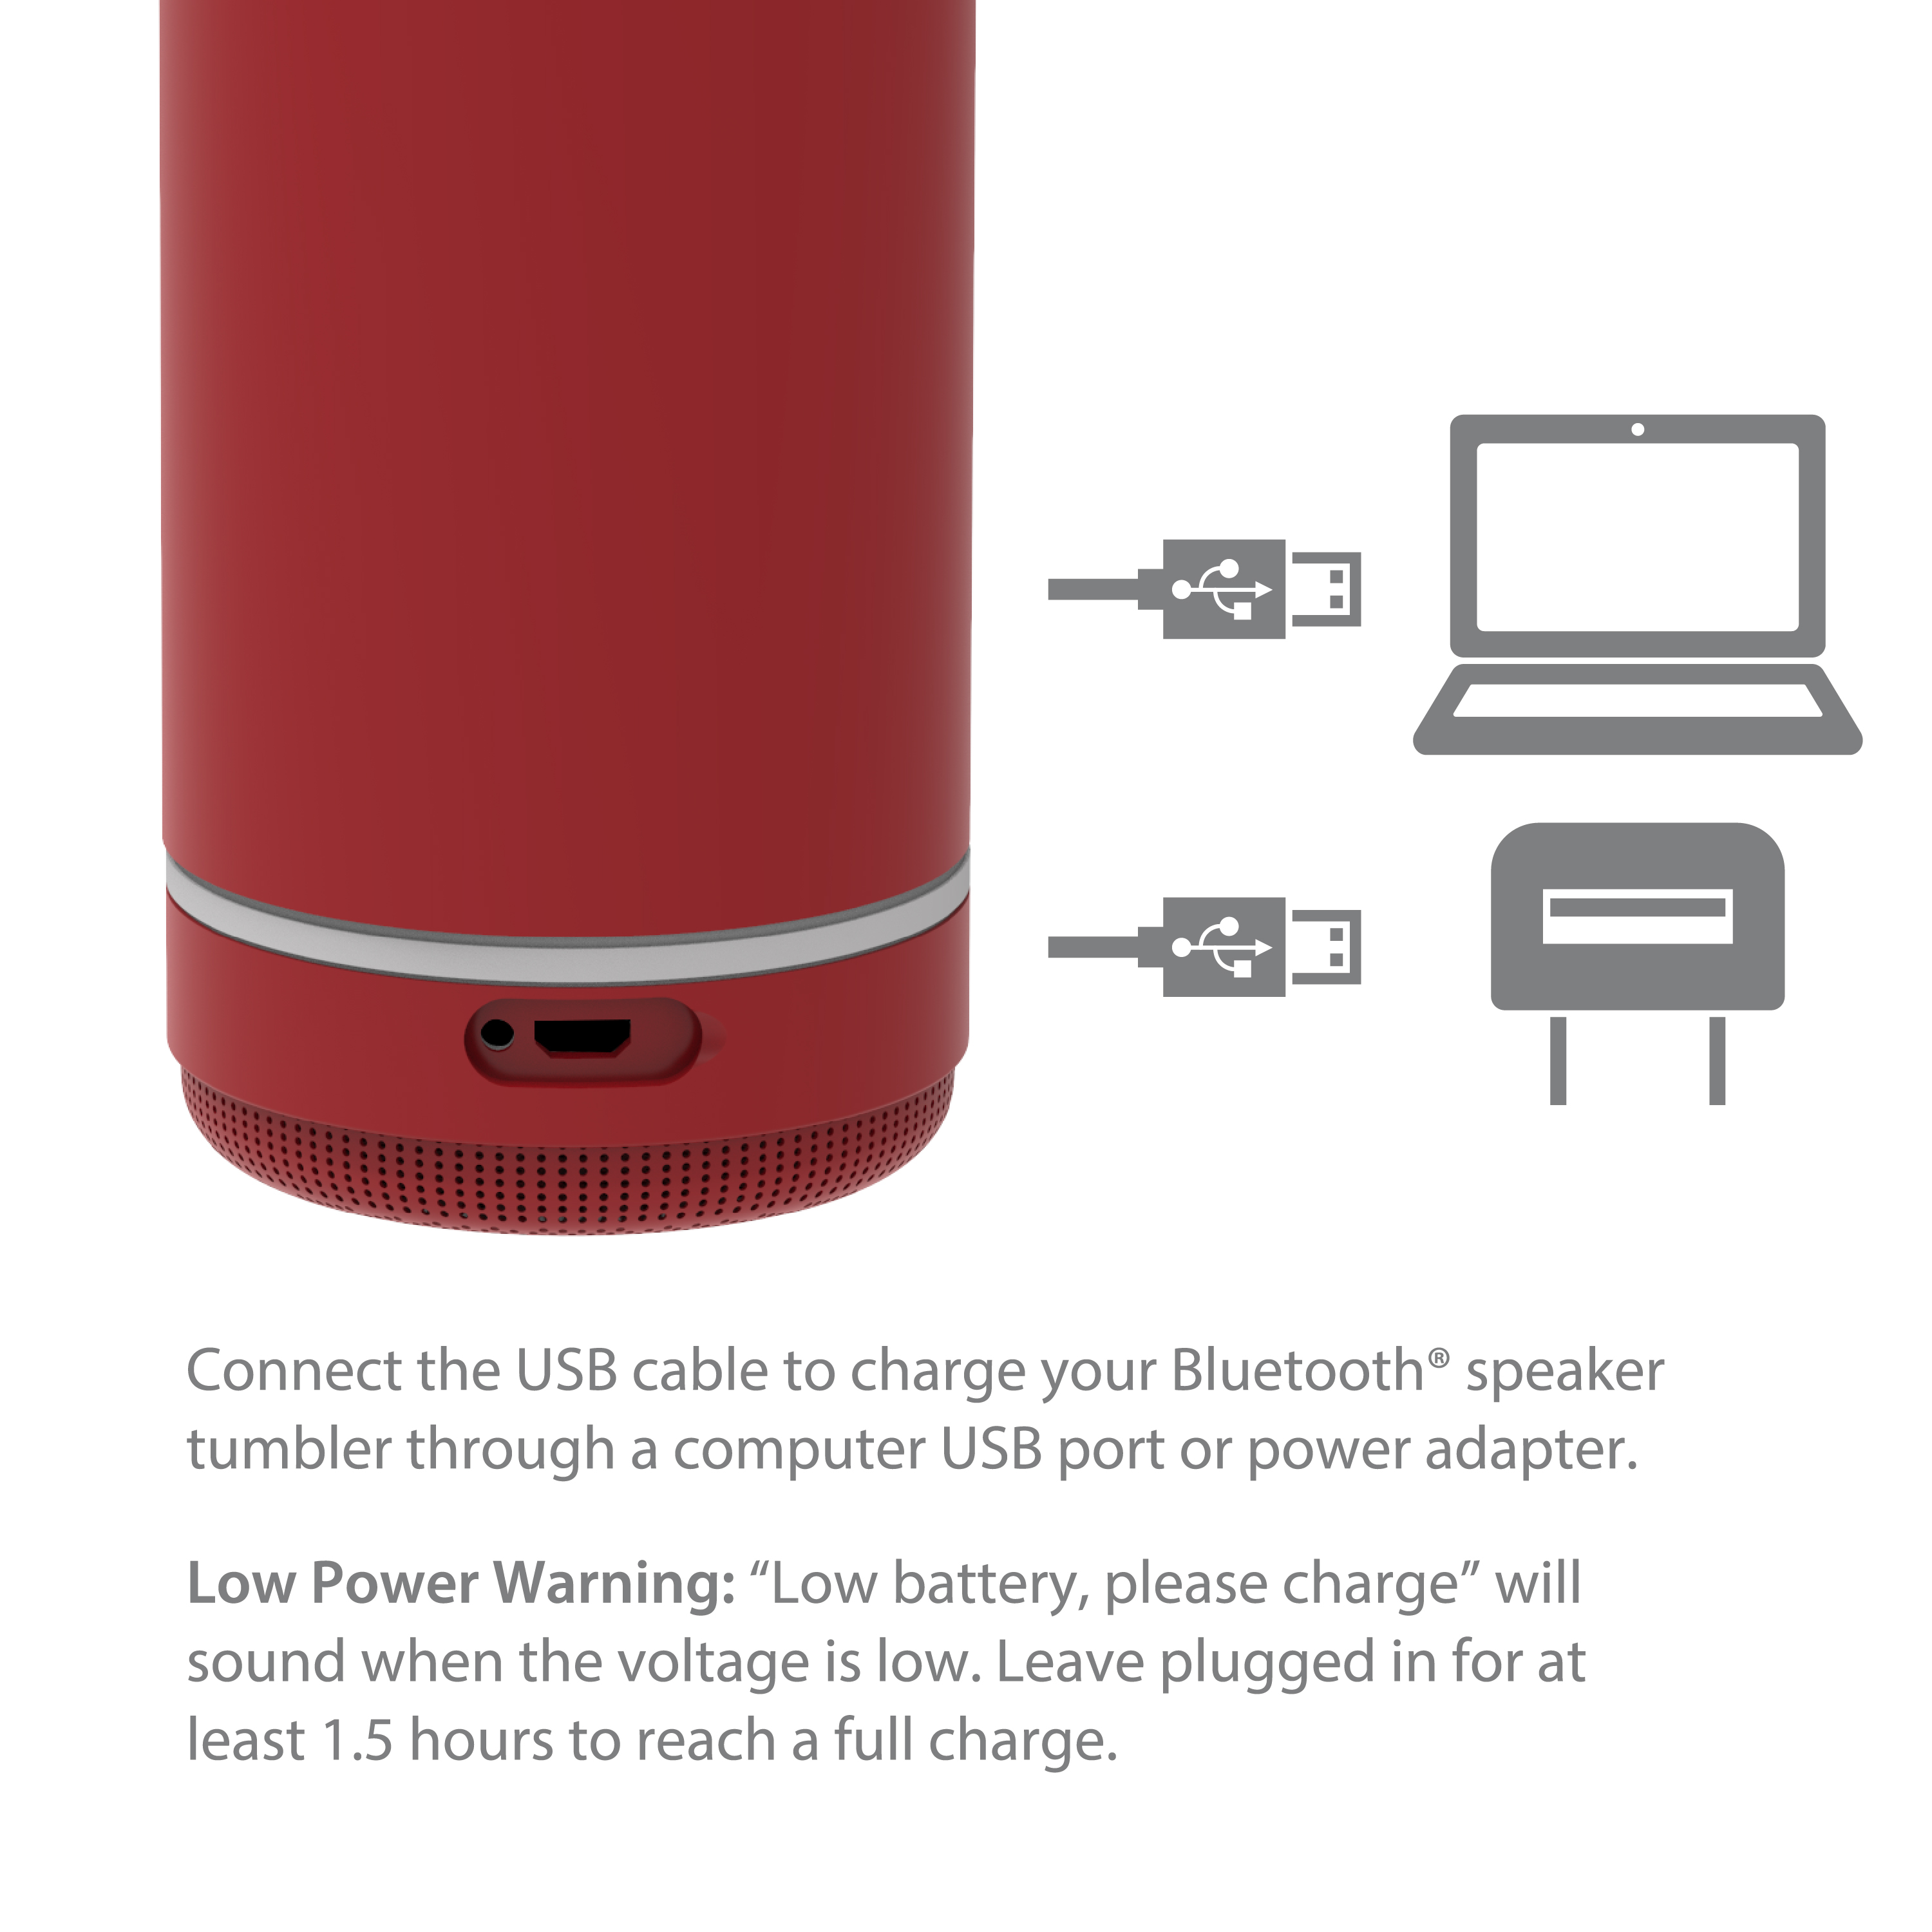 Zak Play 17.5 ounce Stainless Steel Tumbler with Bluetooth Speaker, Red slideshow image 8